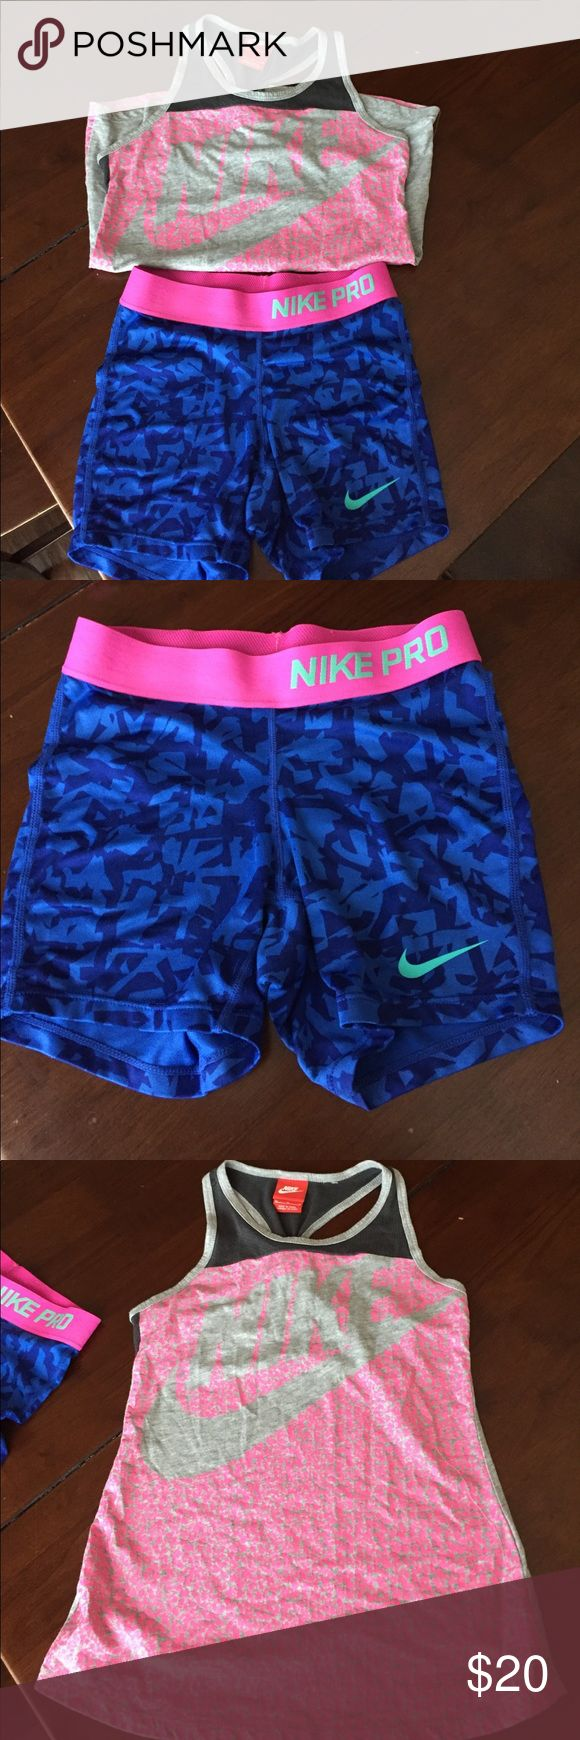 Girls Nike athletic outfit. Girls Nike workout shorts and tank top. Great condition. Nike Matching Sets